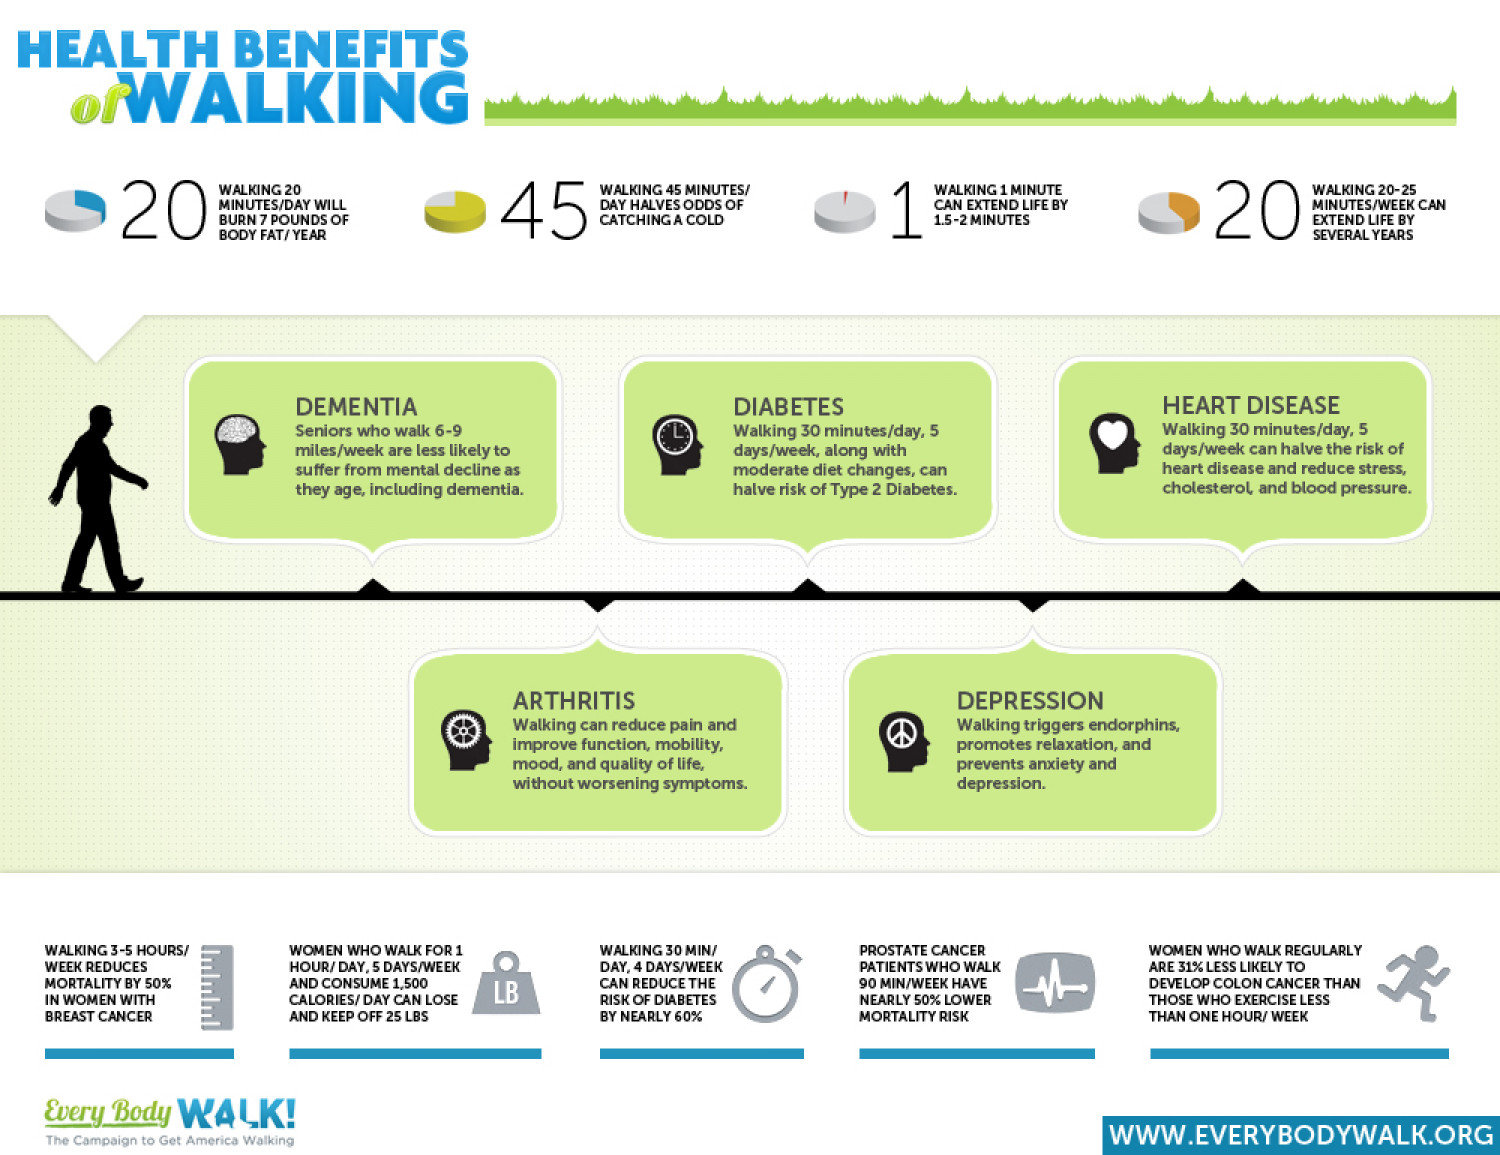 Health Benefits of Walking Infographic